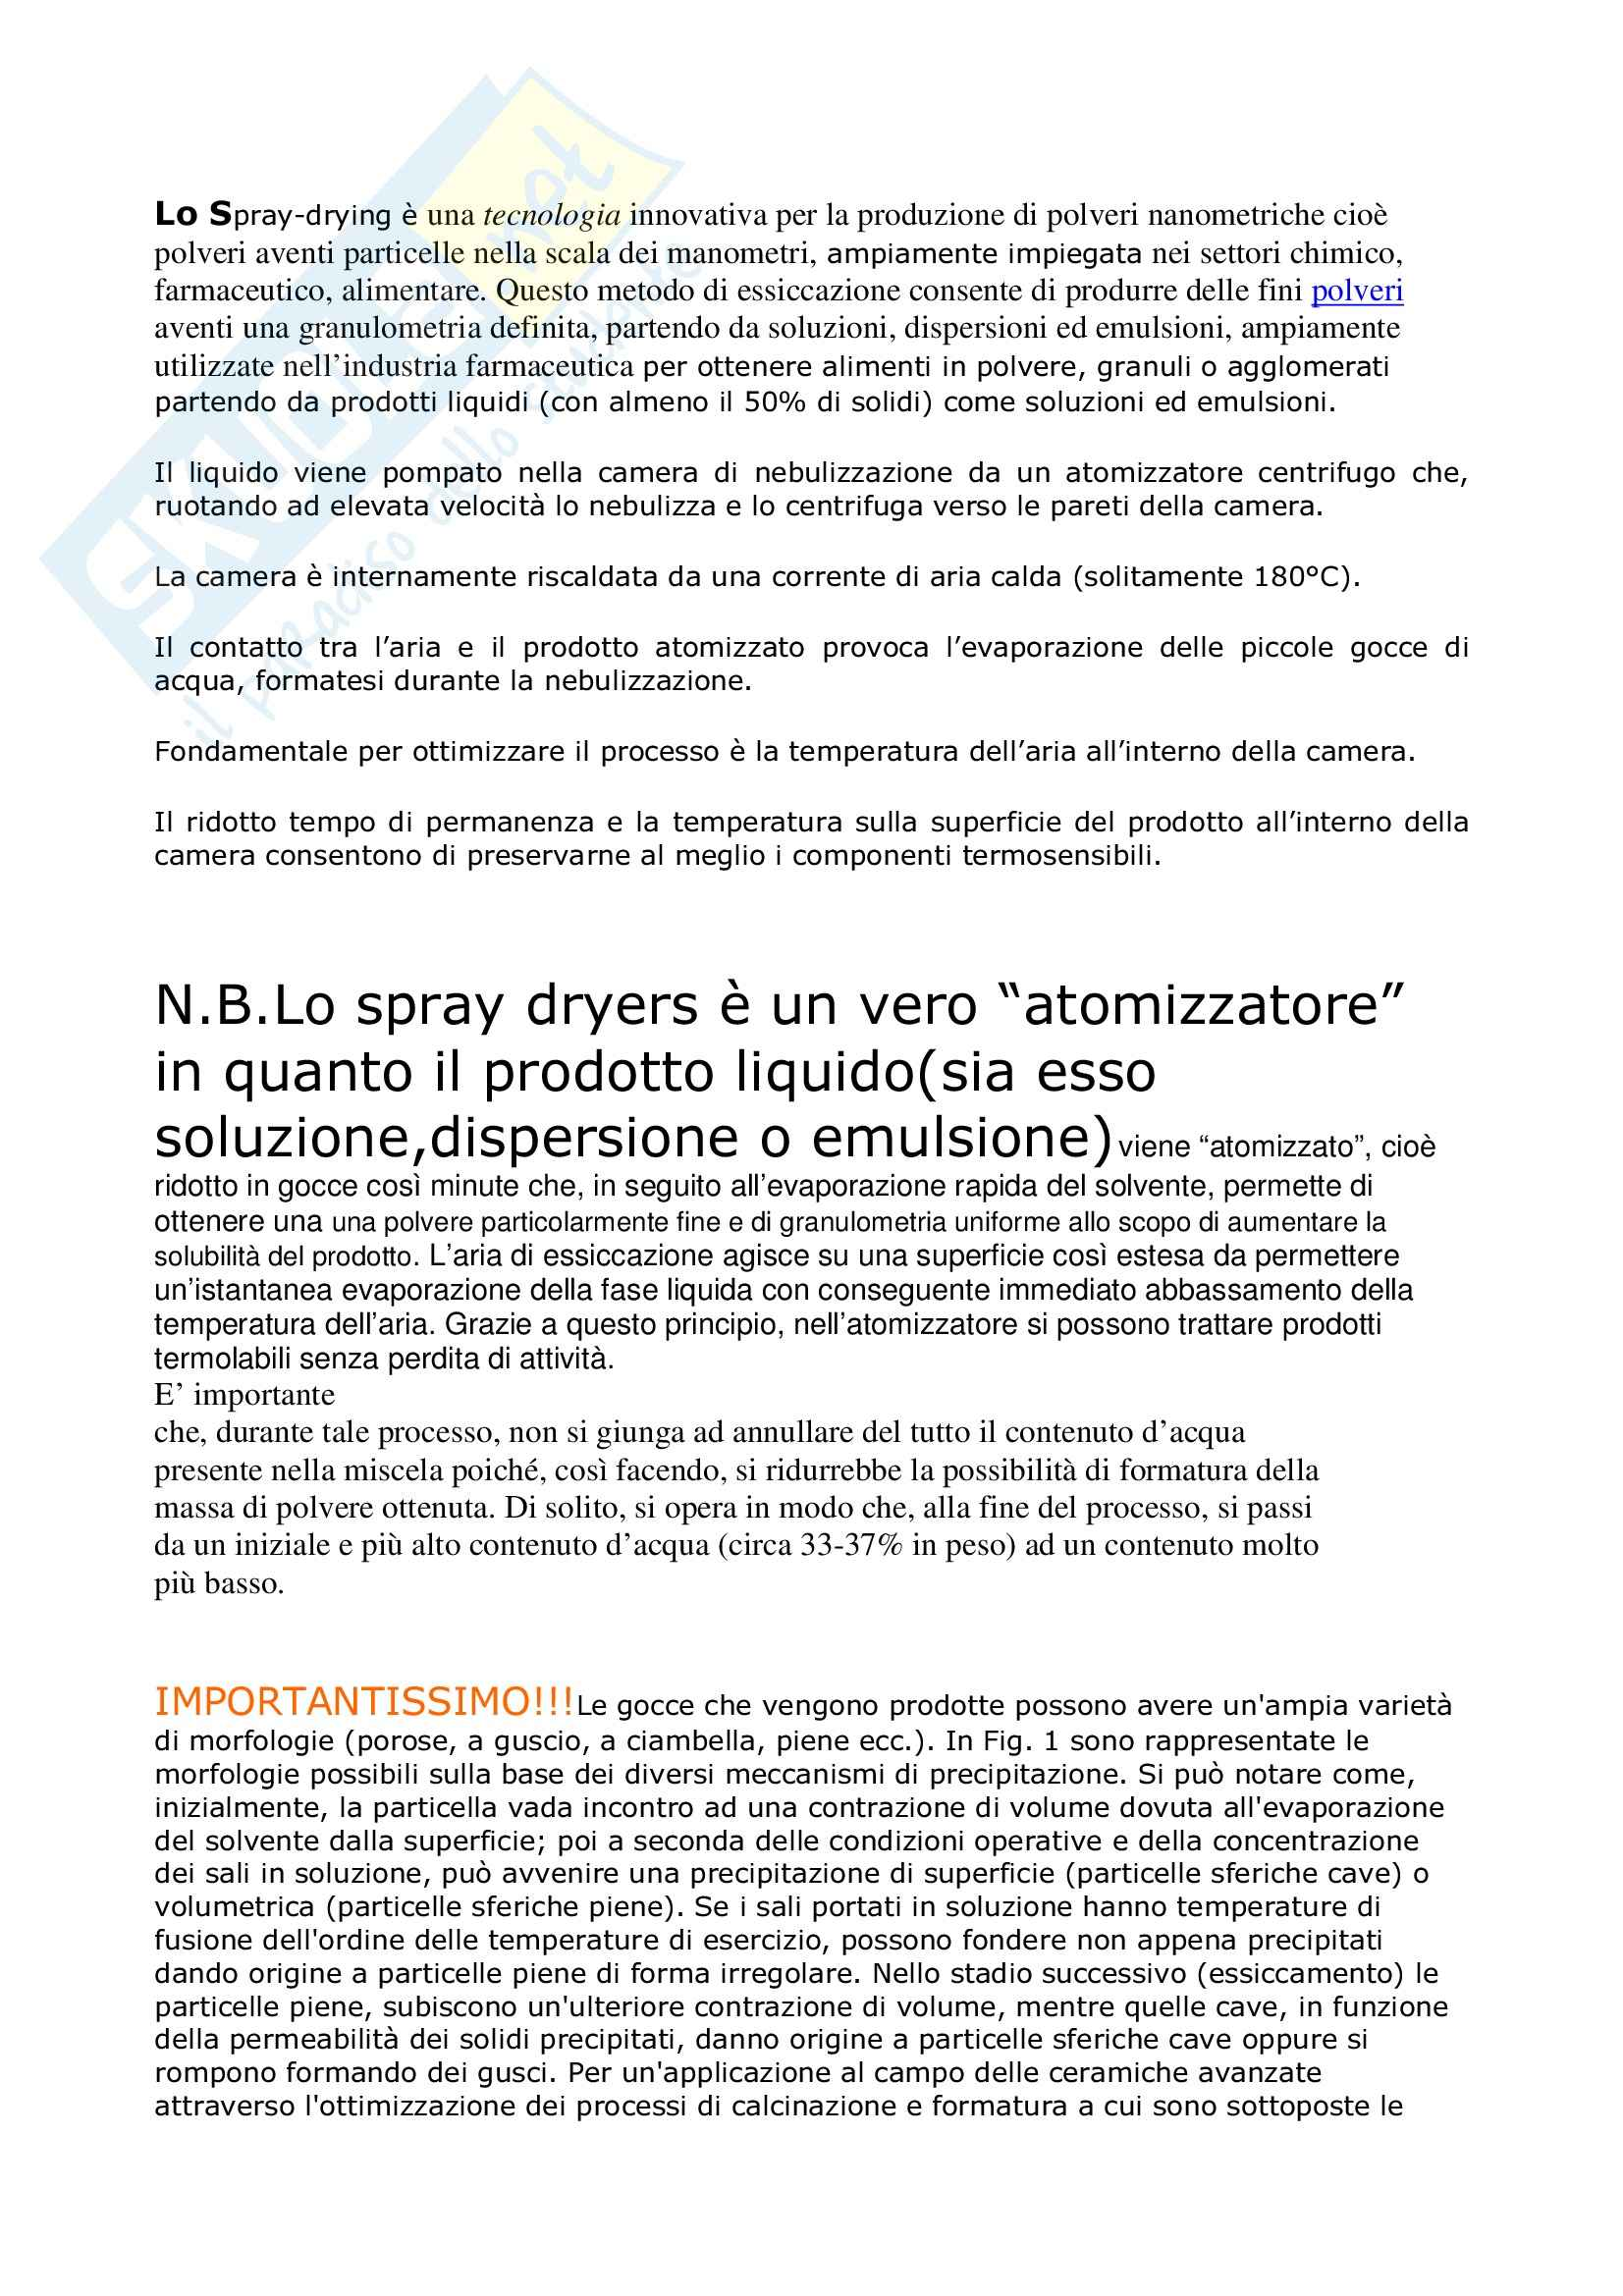 Tecnica farmaceutica - introduzione Spray dryer